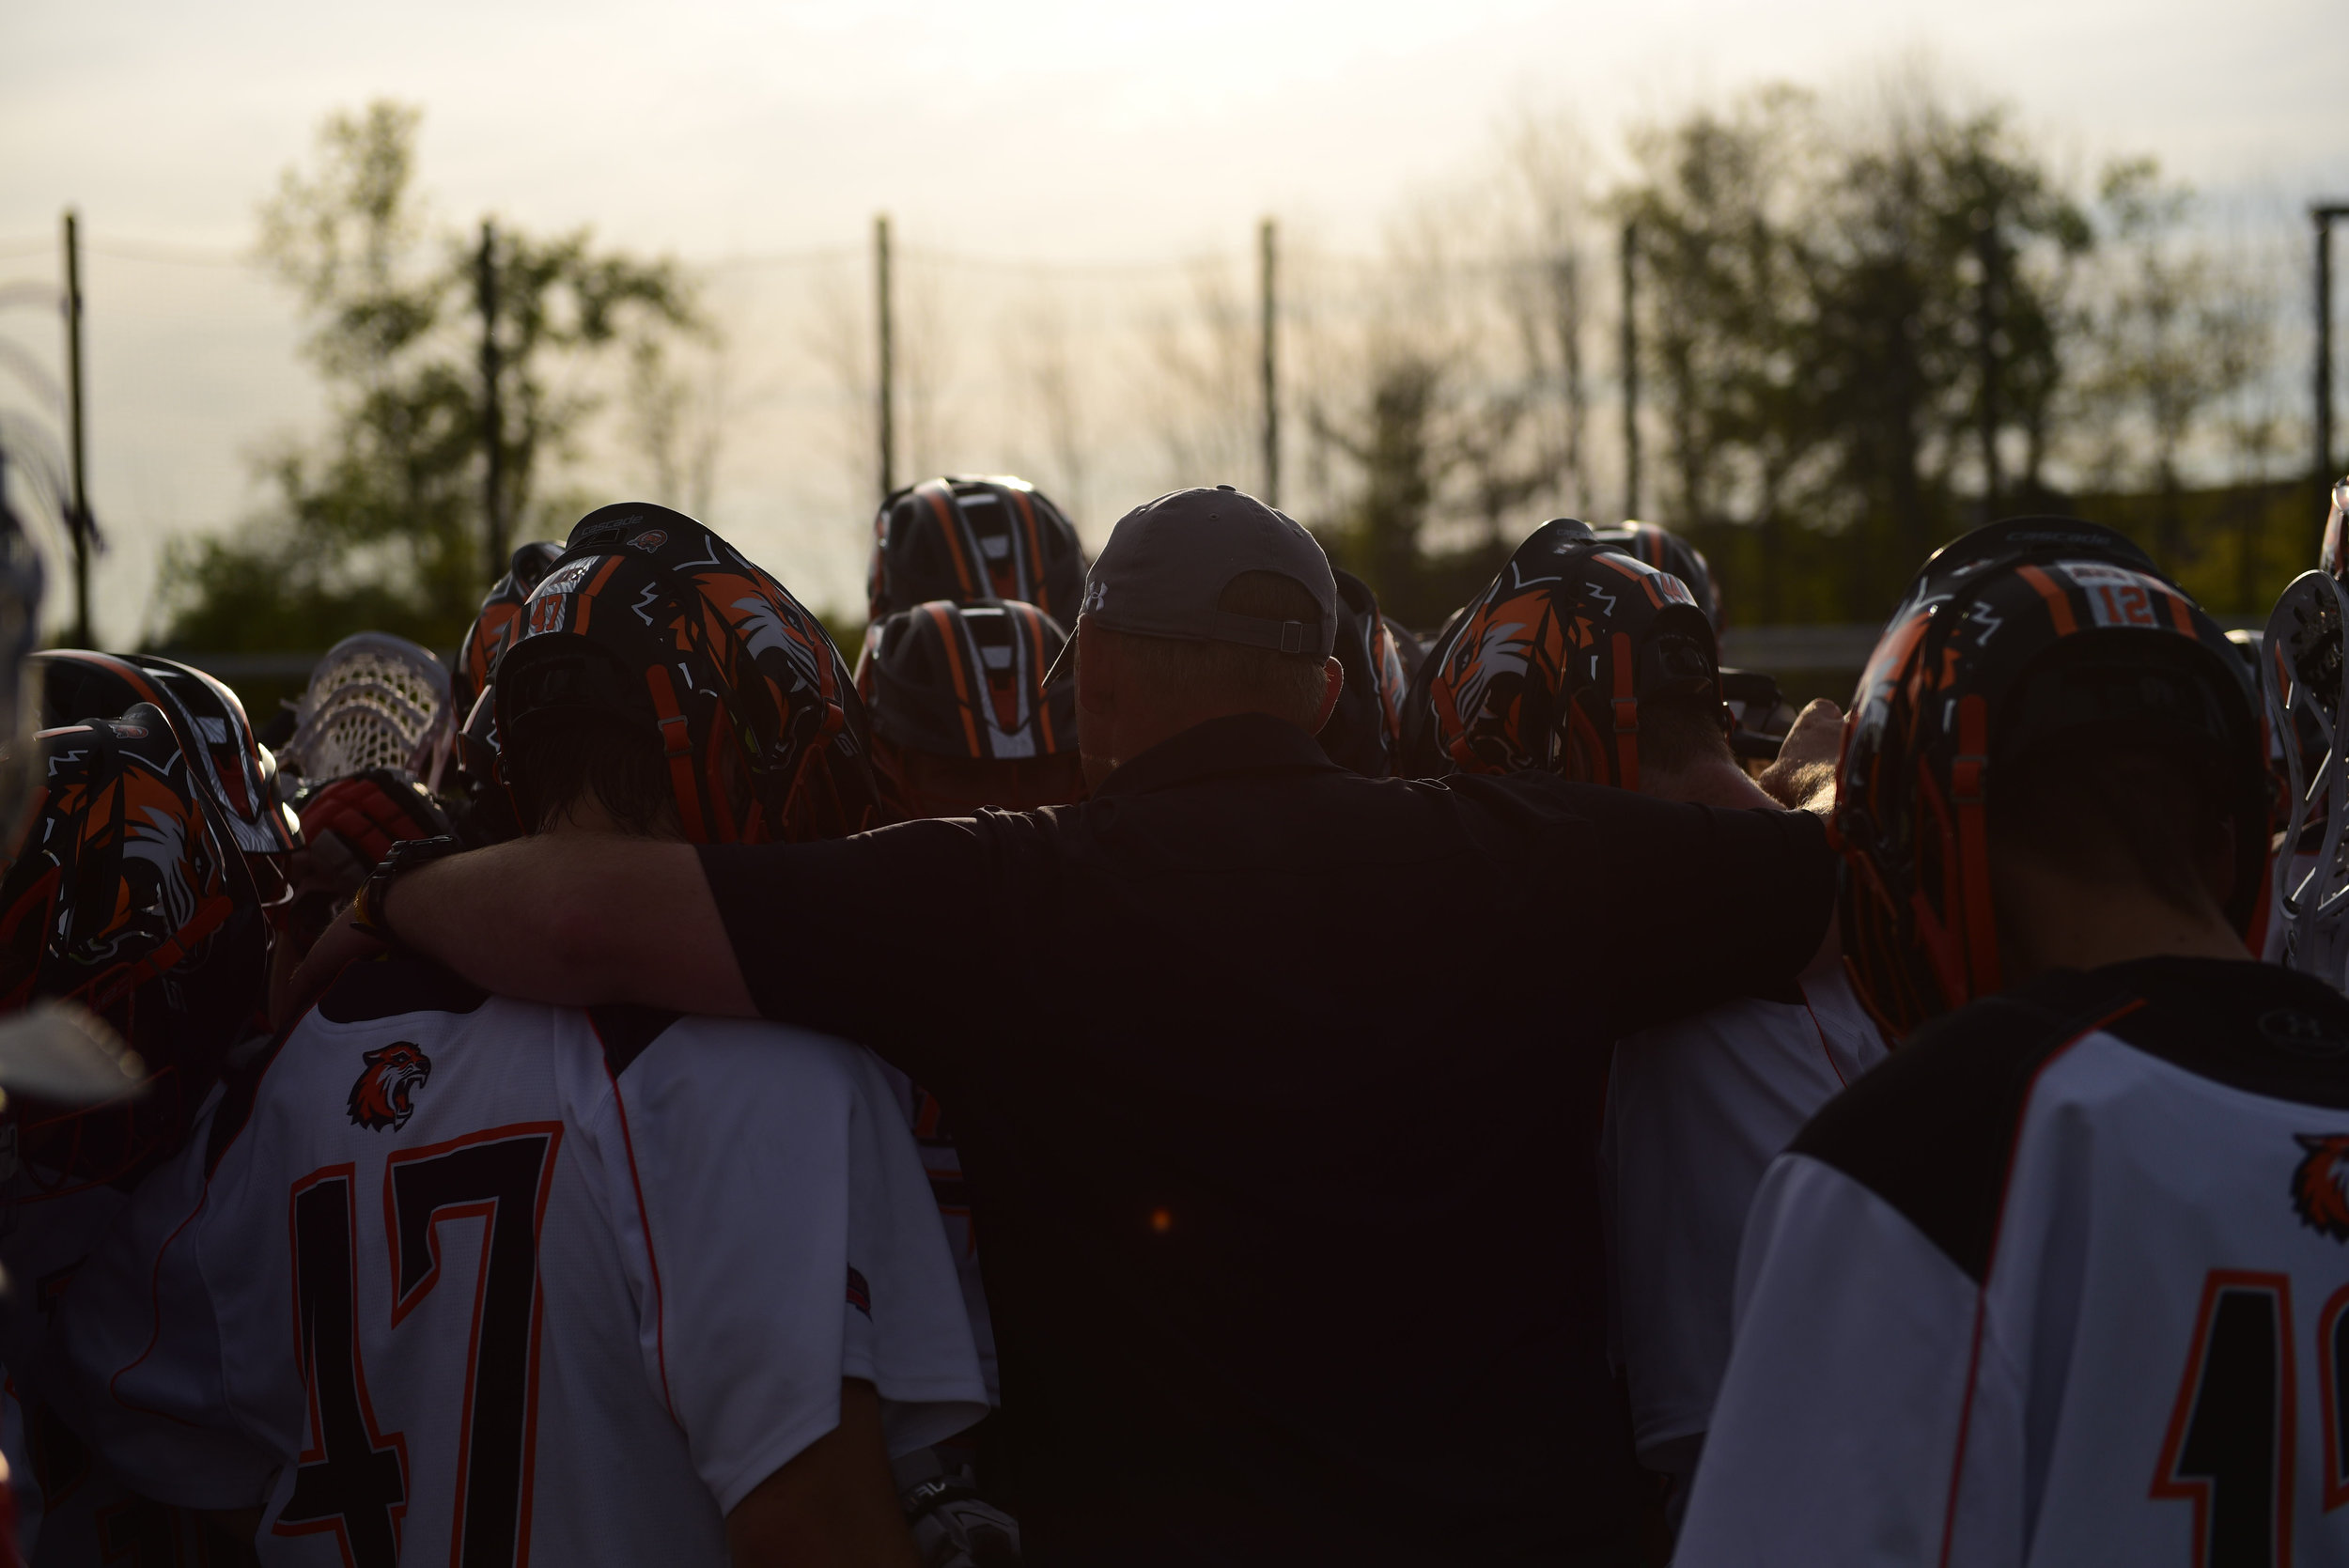 The RIT Tigers huddle before their game against York College in the Quarterfinal Round of the NCAA Men's Lacrosse Championships at the RIT Turf Field in Henrietta, N.Y. on May 16, 2018.